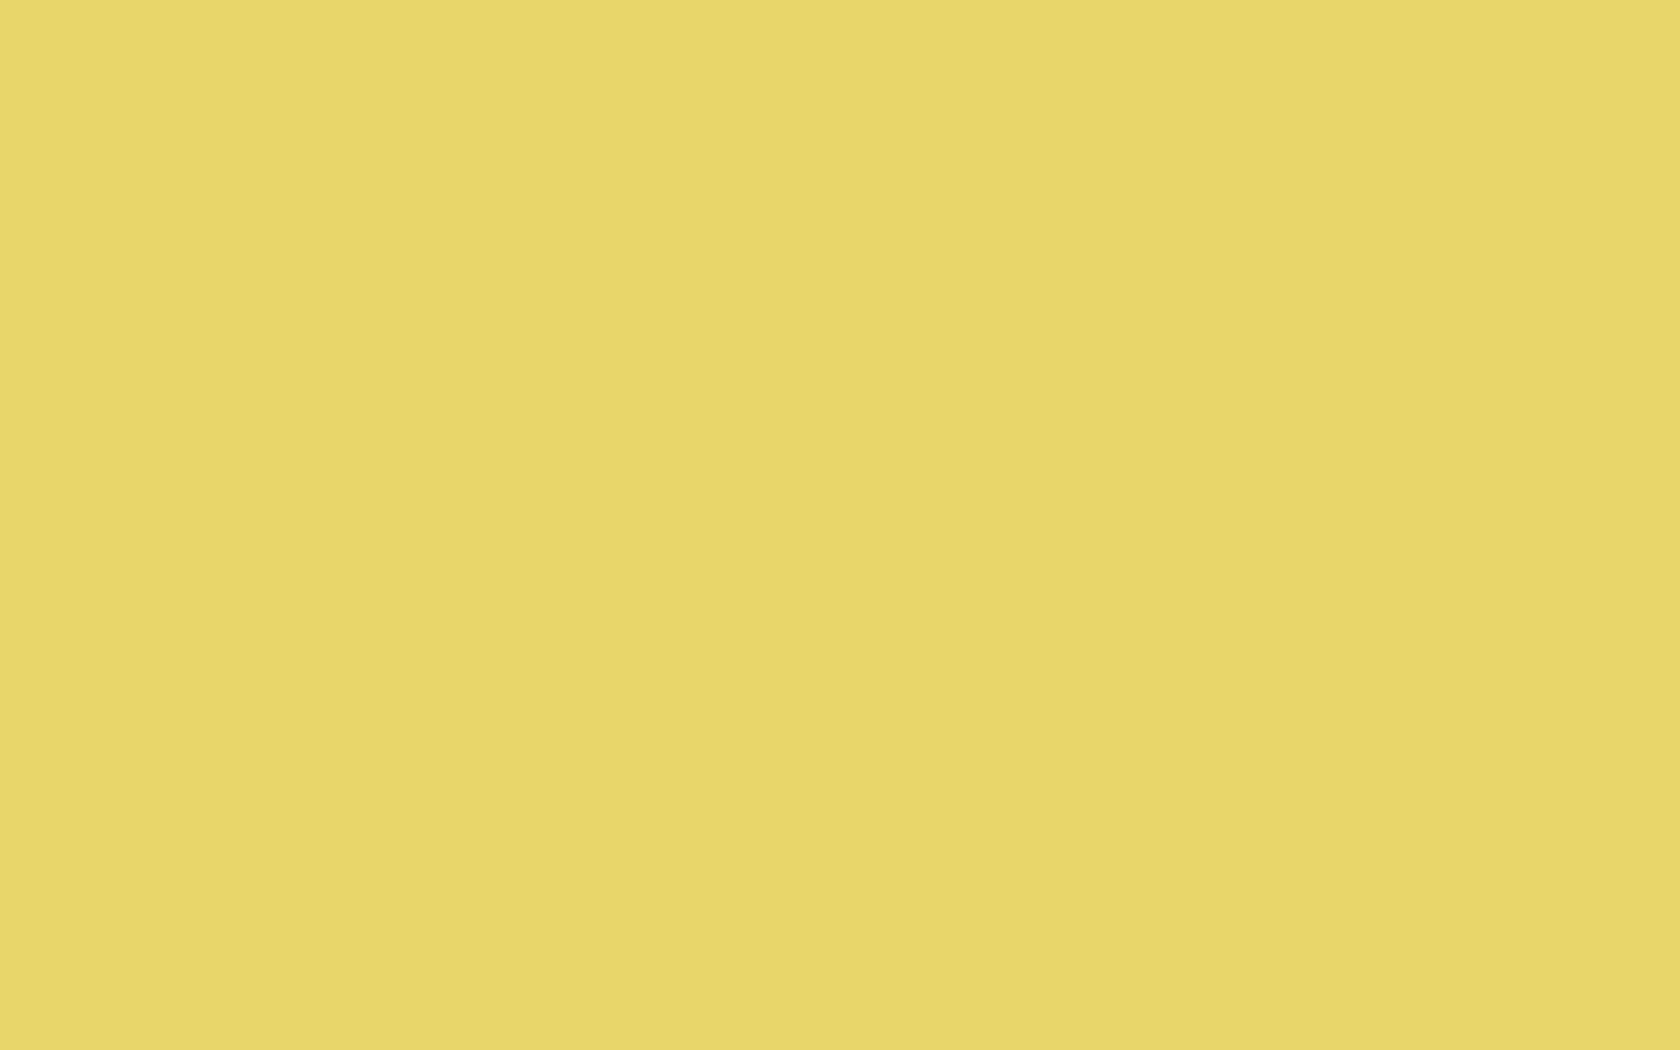 1680x1050 Arylide Yellow Solid Color Background